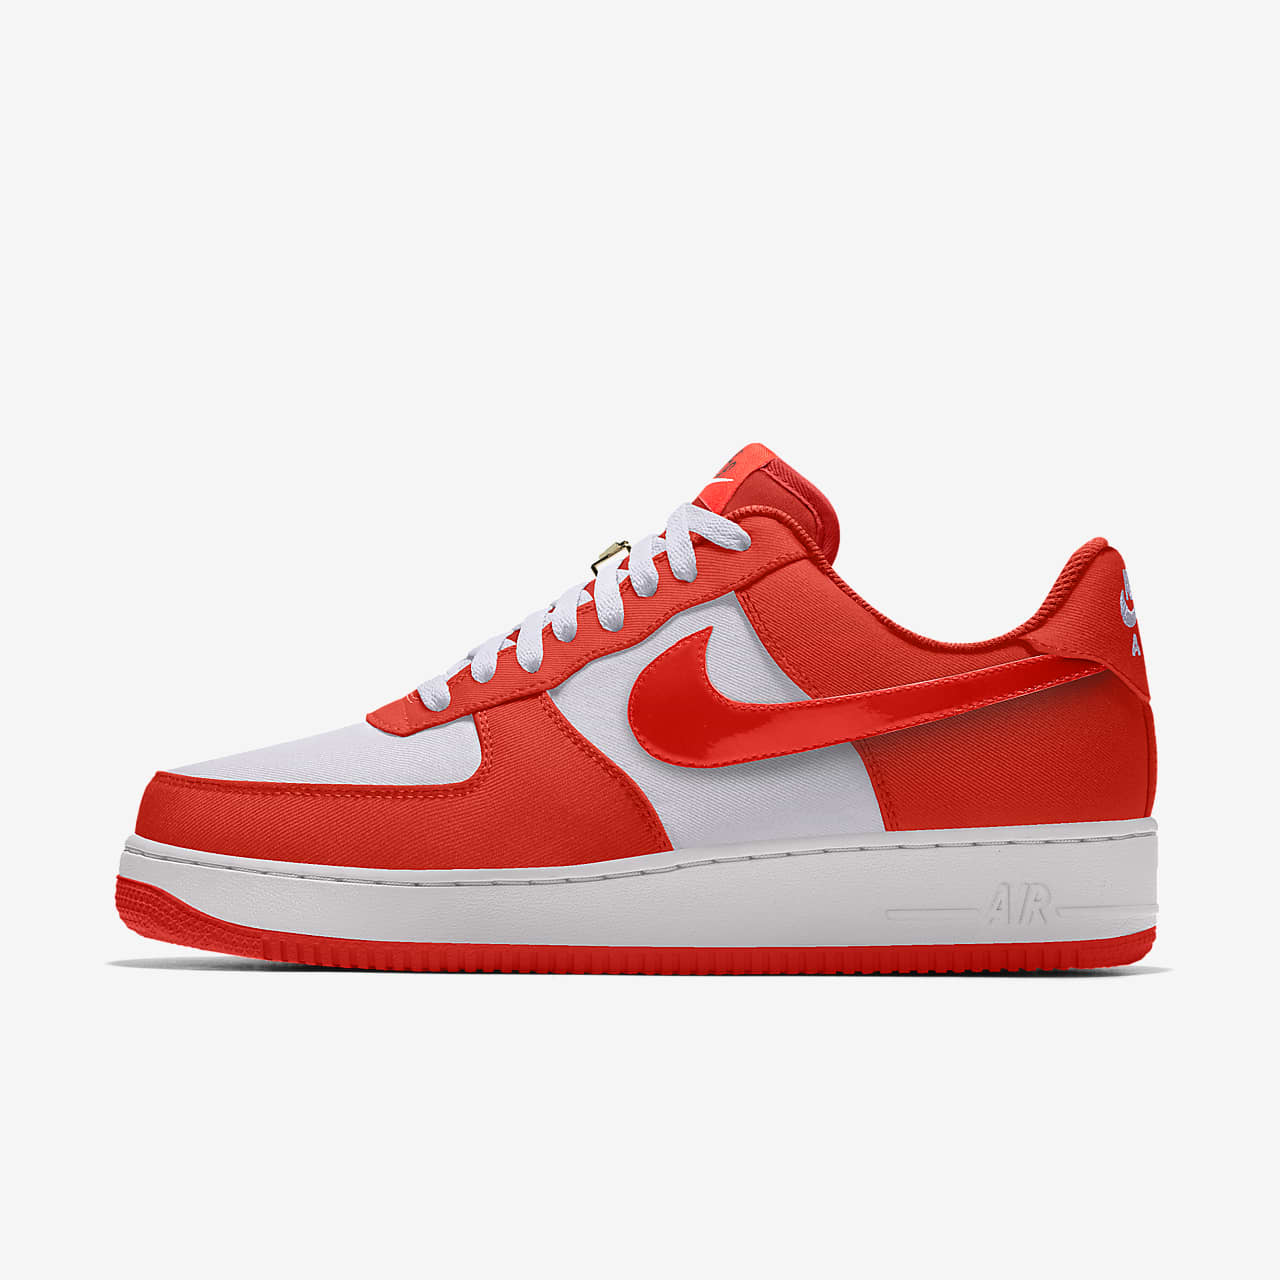 Chaussure personnalisable Nike Air Force1 Low Unlocked pour Homme